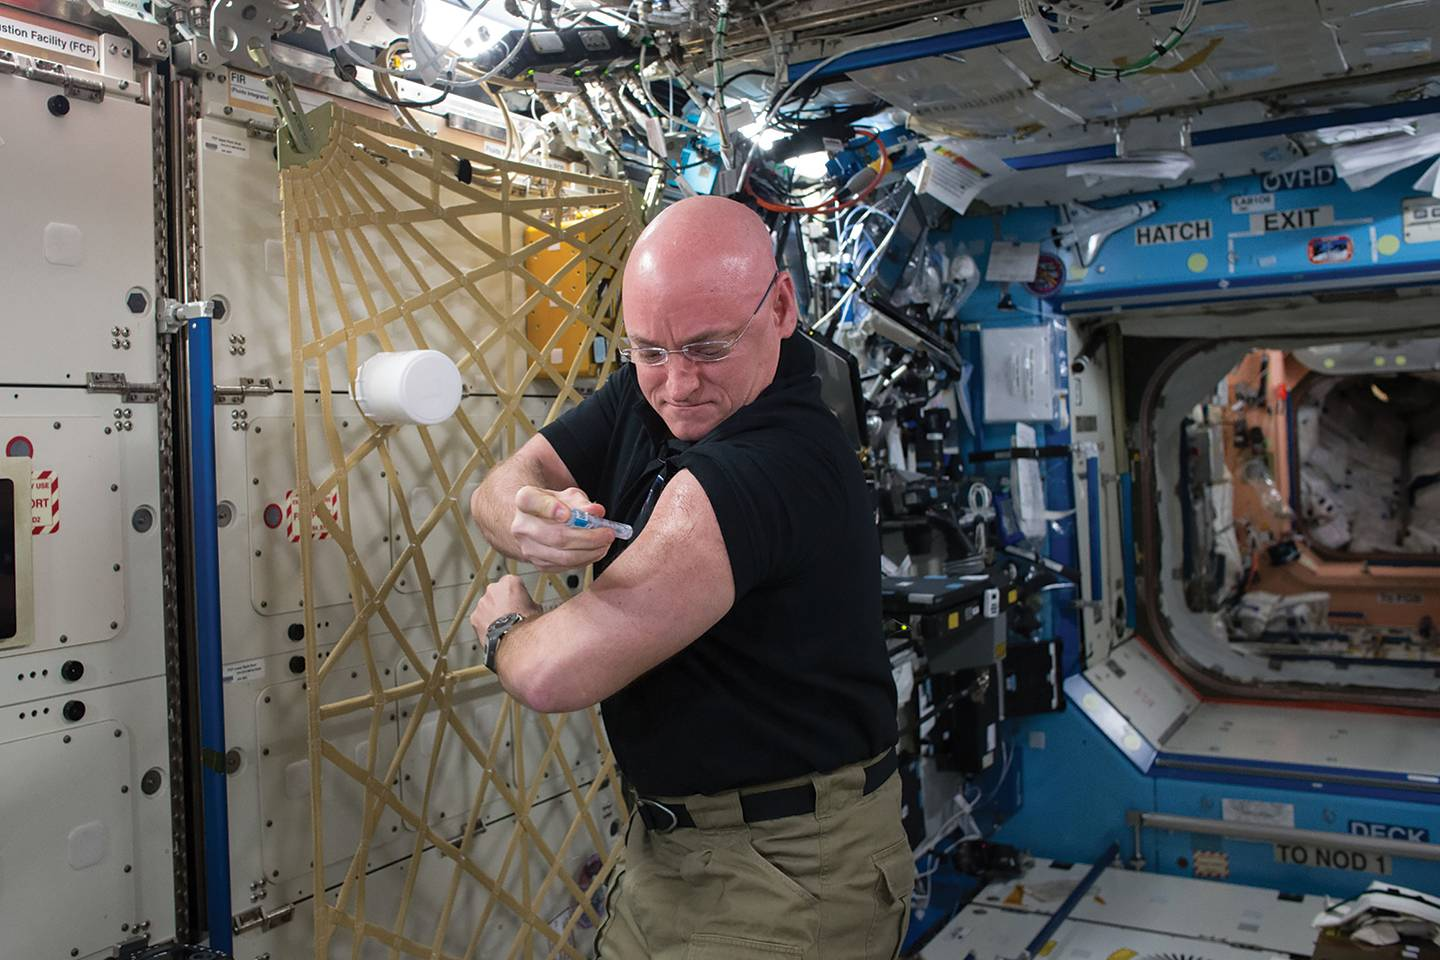 Astronaut Scott Kelly injects himself with a needle